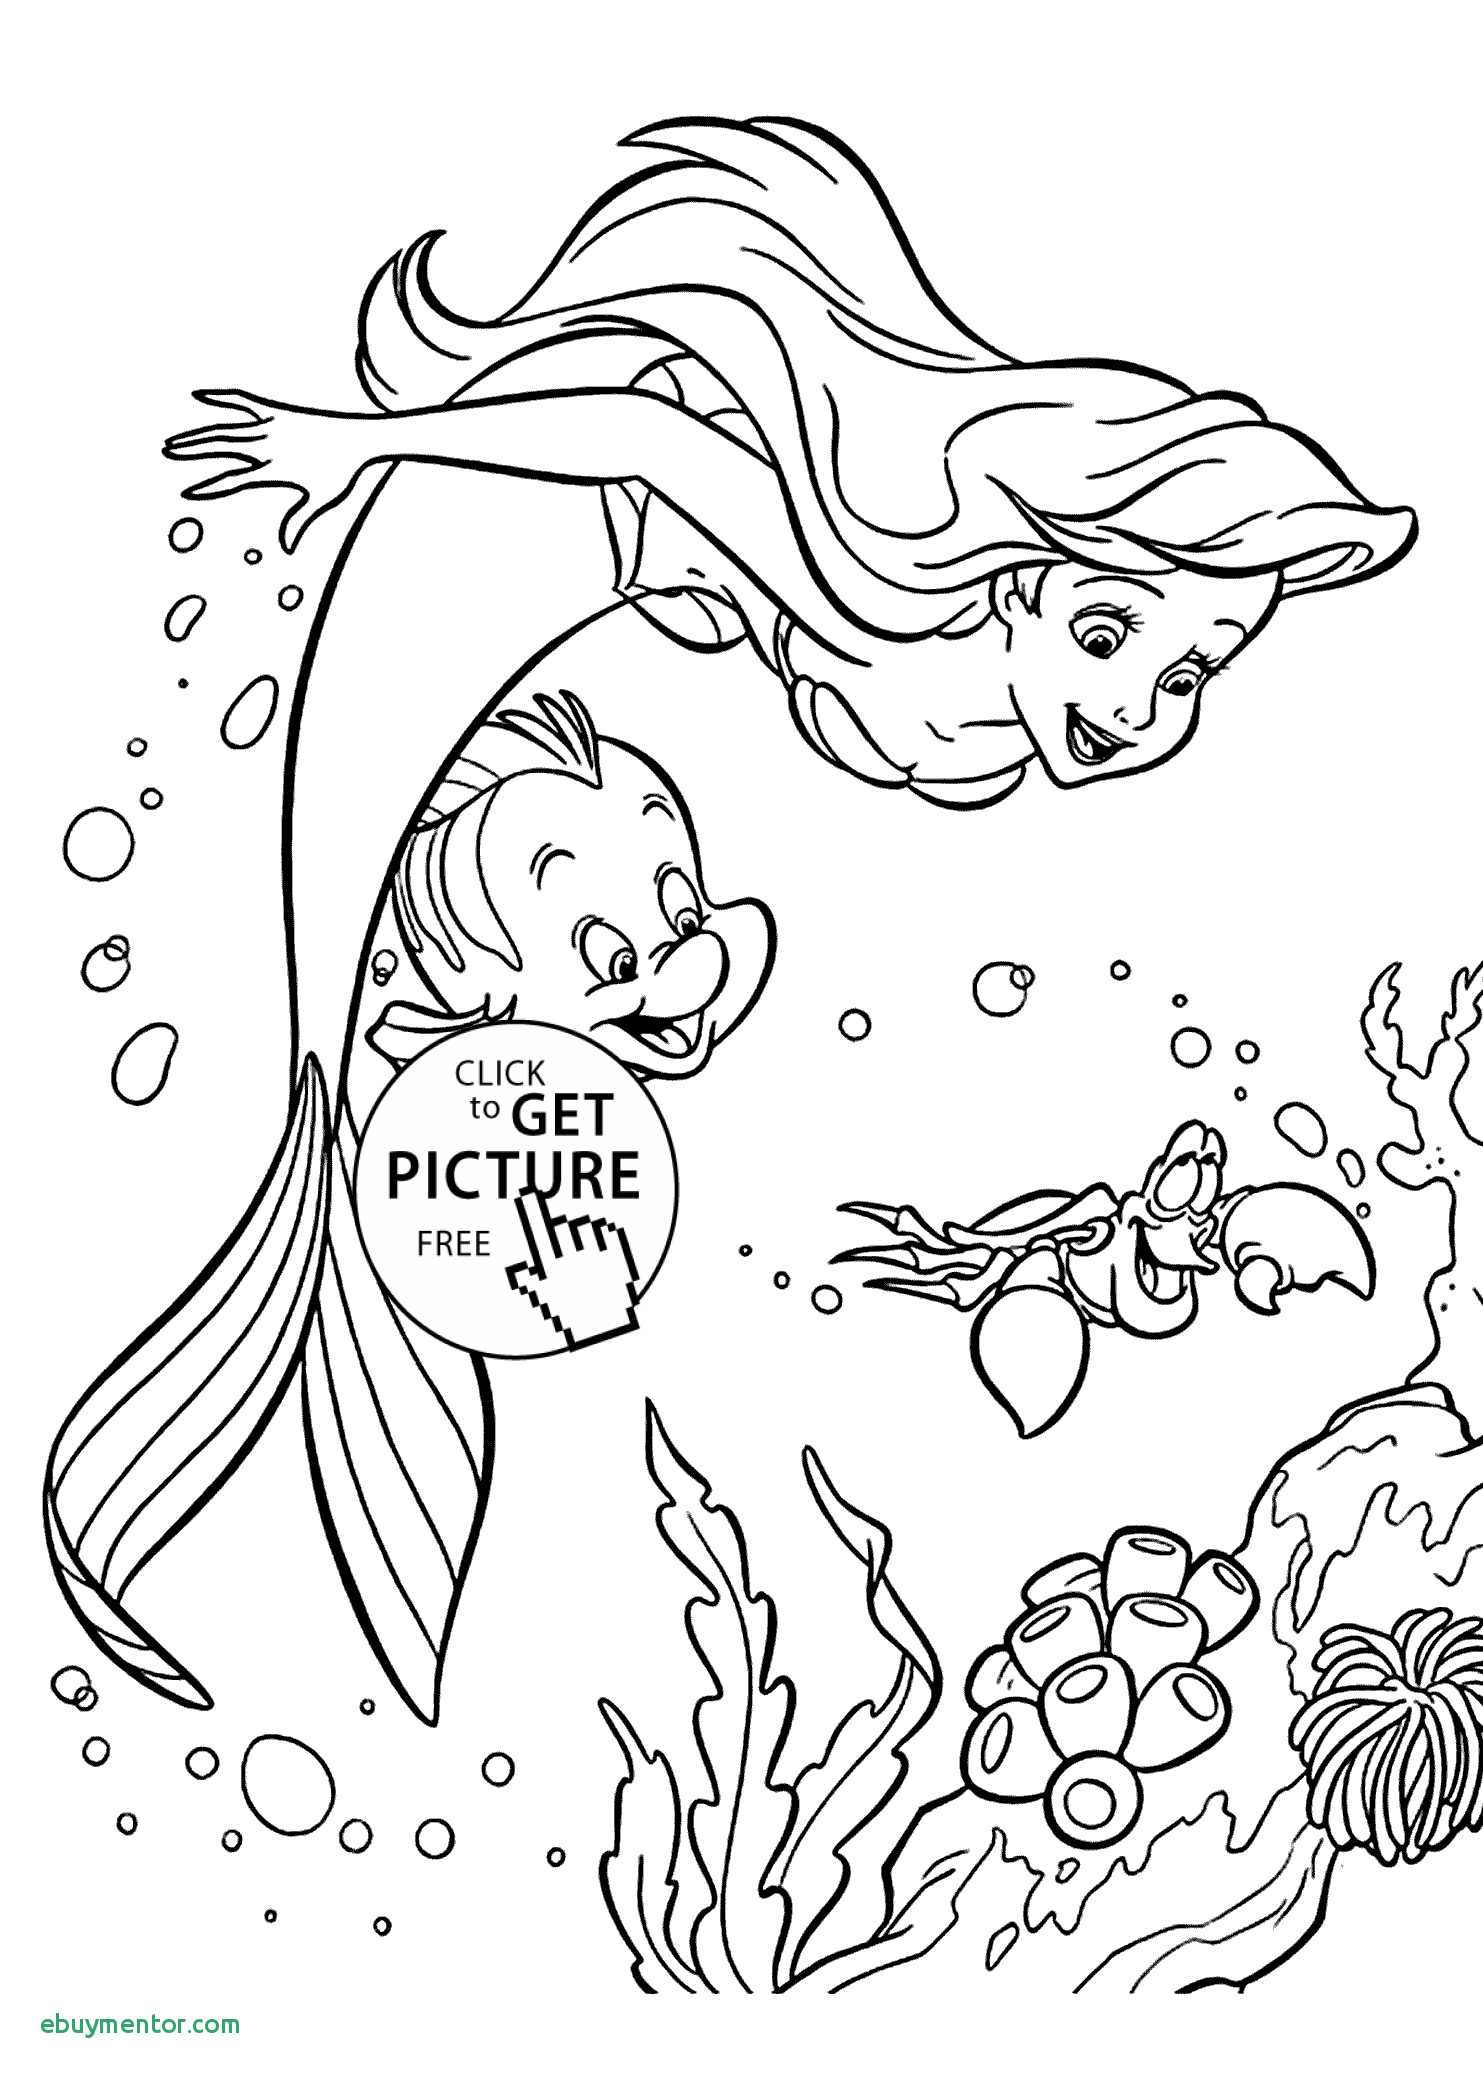 Free Little Mermaid Coloring Pages  Download 15t - Free Download